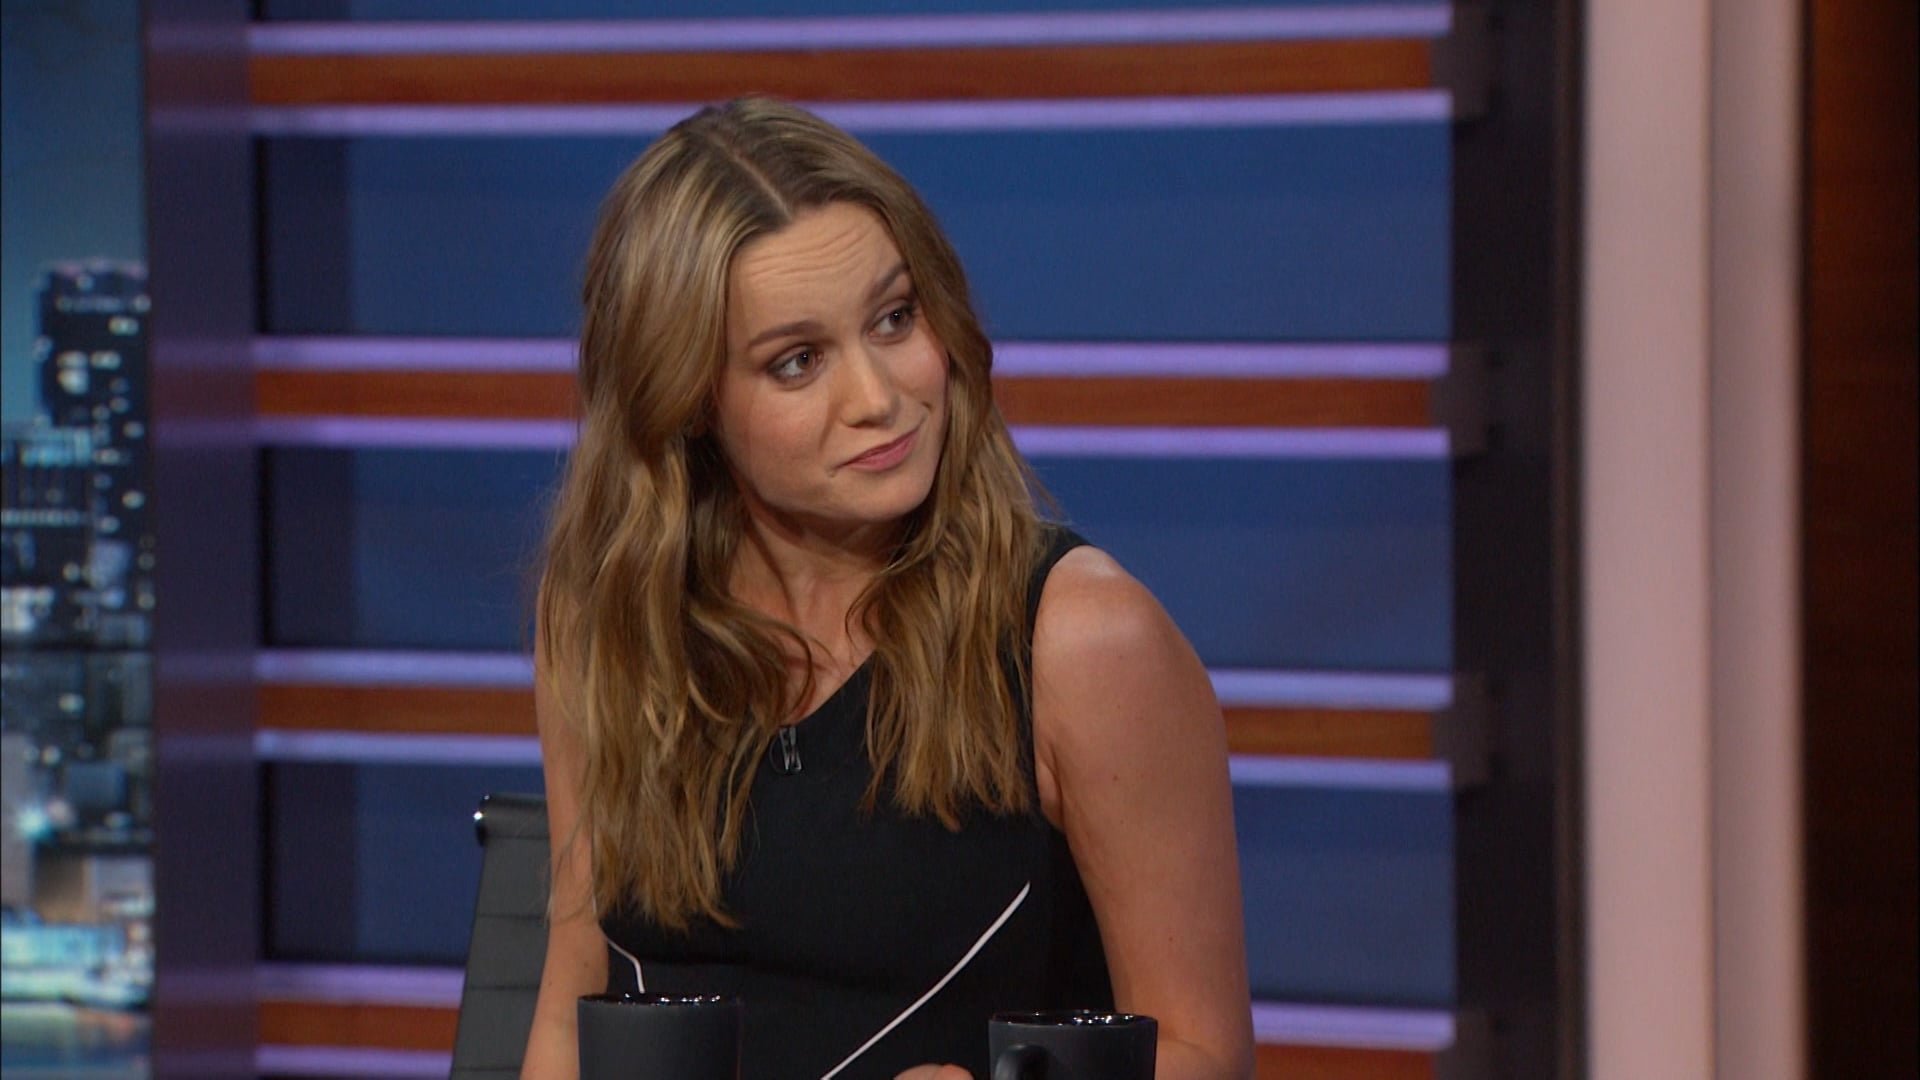 The Daily Show with Trevor Noah Season 21 :Episode 15  Brie Larson